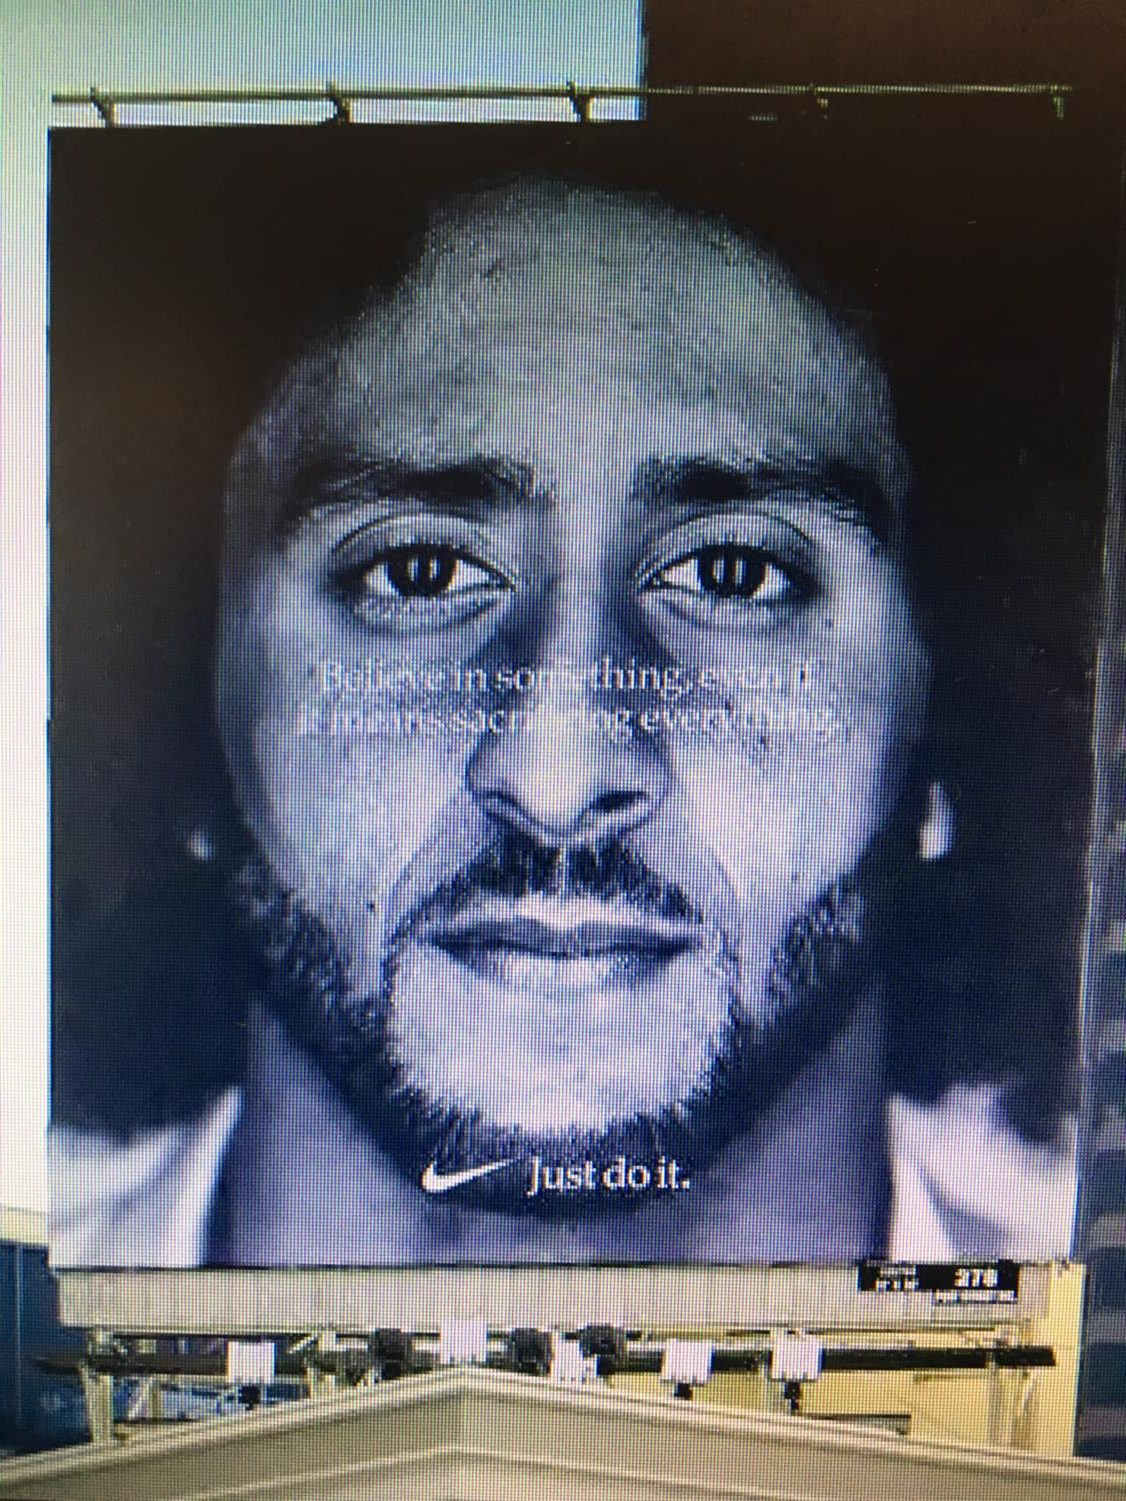 Nike's newest ad campaign